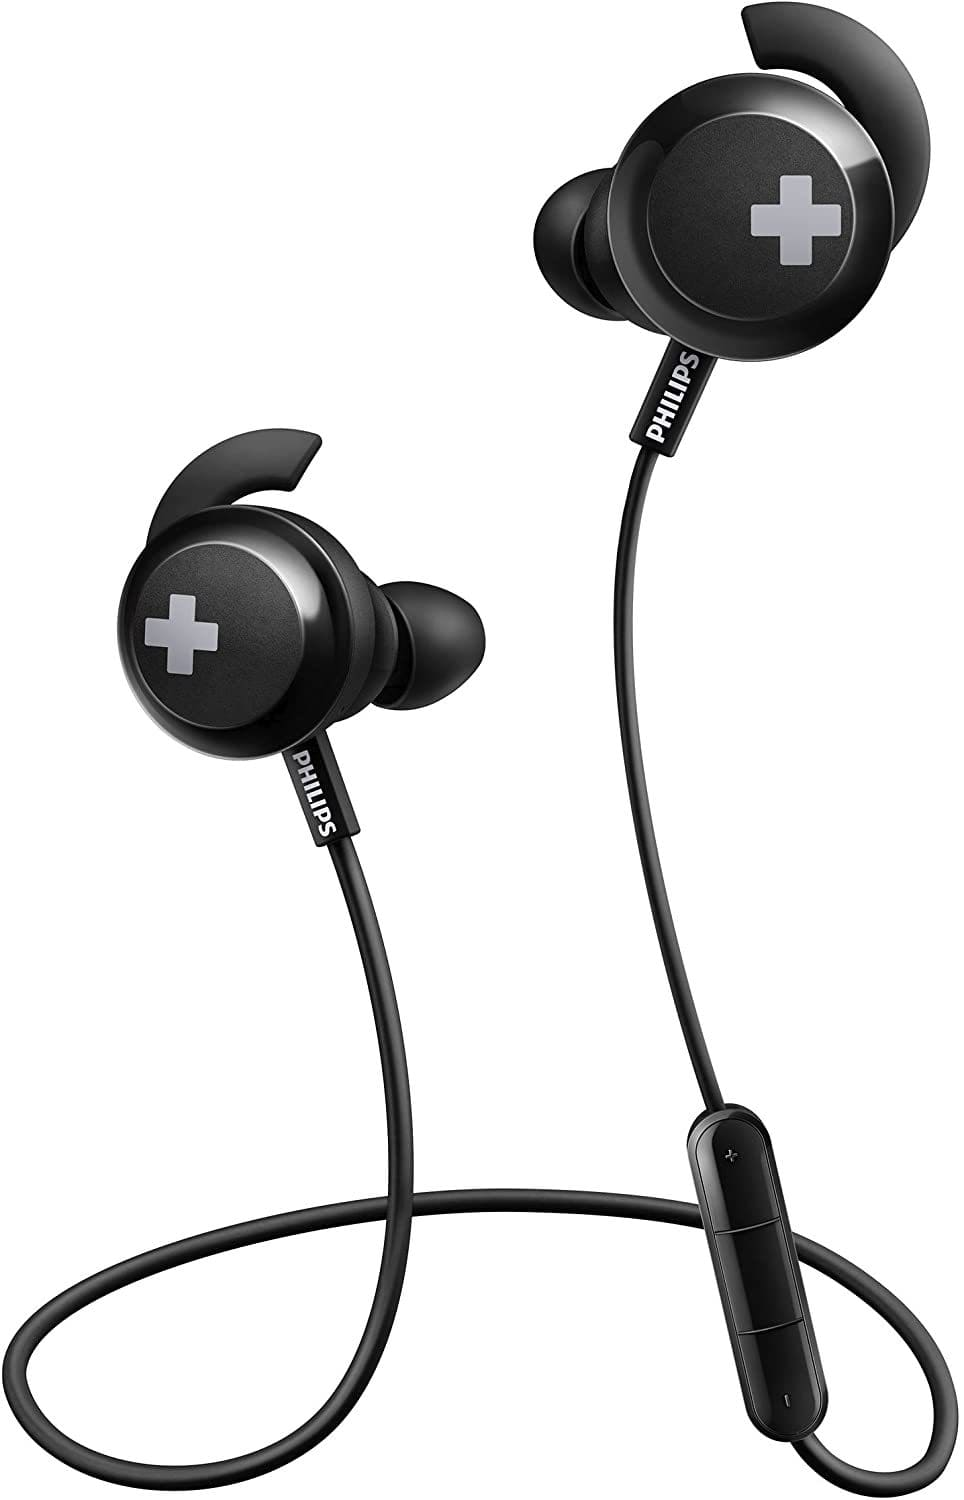 Philips SHB4305BK Bass+ Bluetooth Earphones with Mic - Black [Accessories]